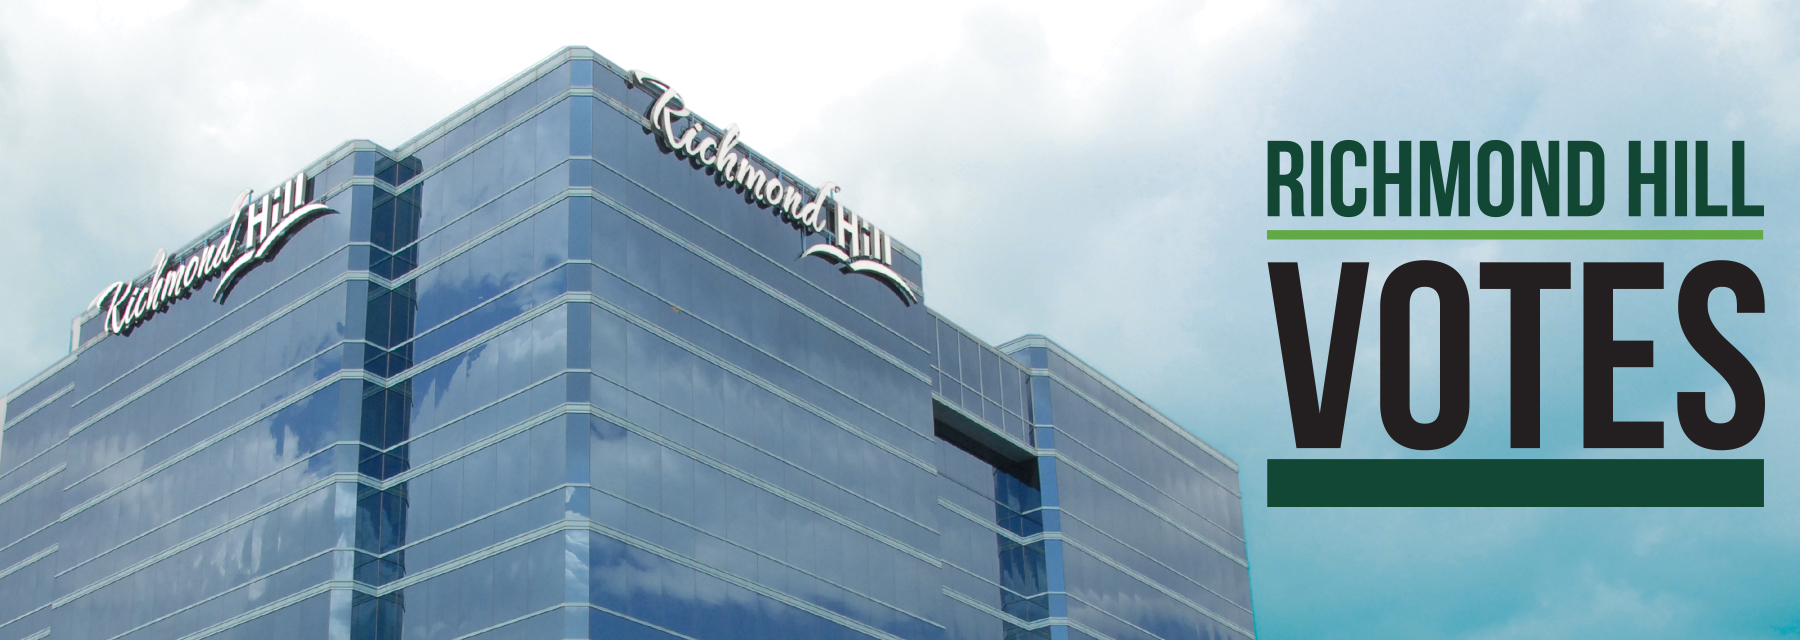 Picture of Richmond Hill Municipal Office with RH Votes Logo